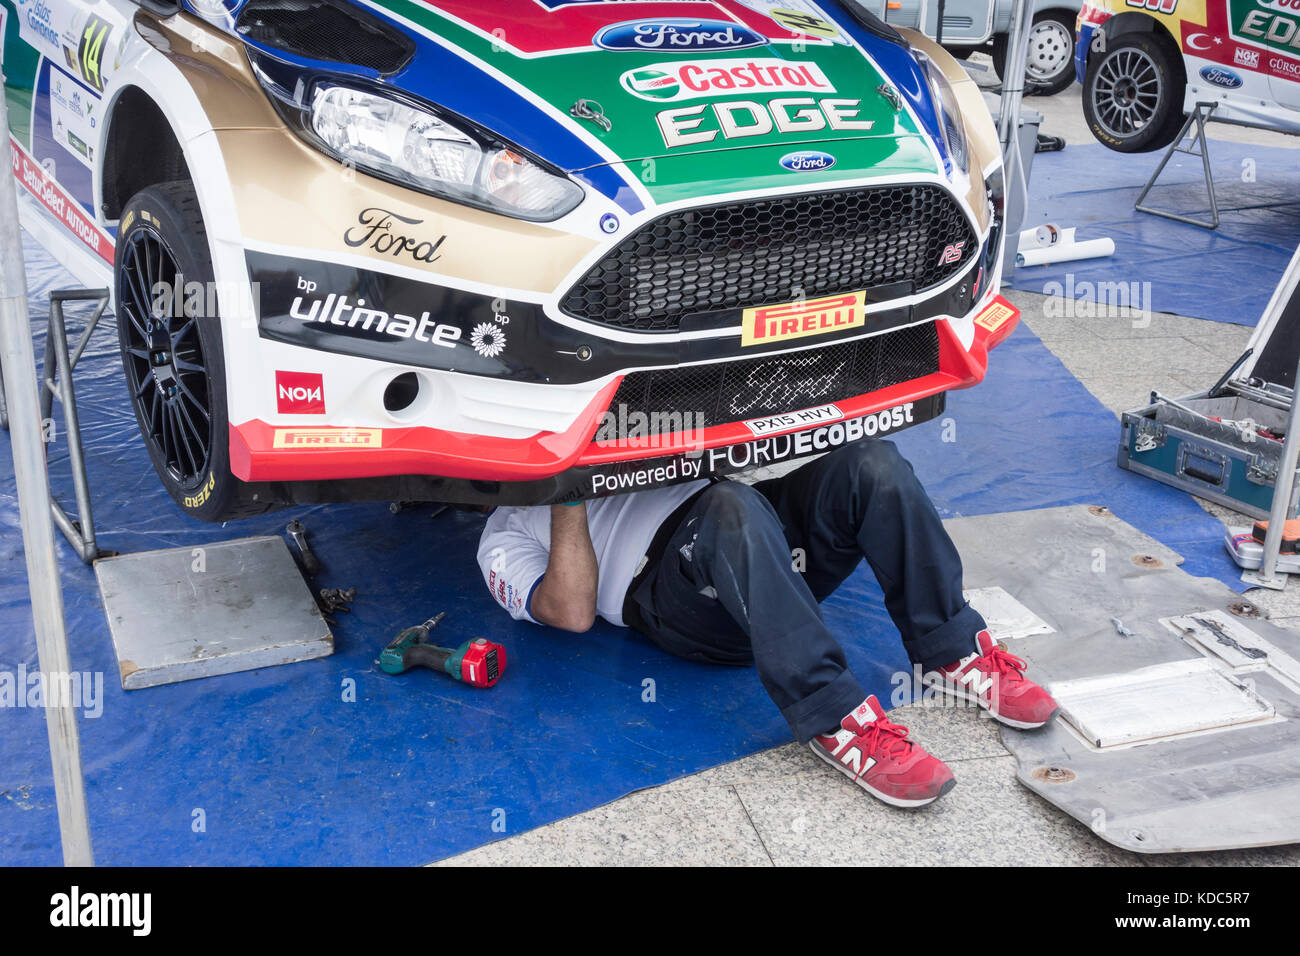 Rally mechanic under car at Gran Canaria rally. - Stock Image